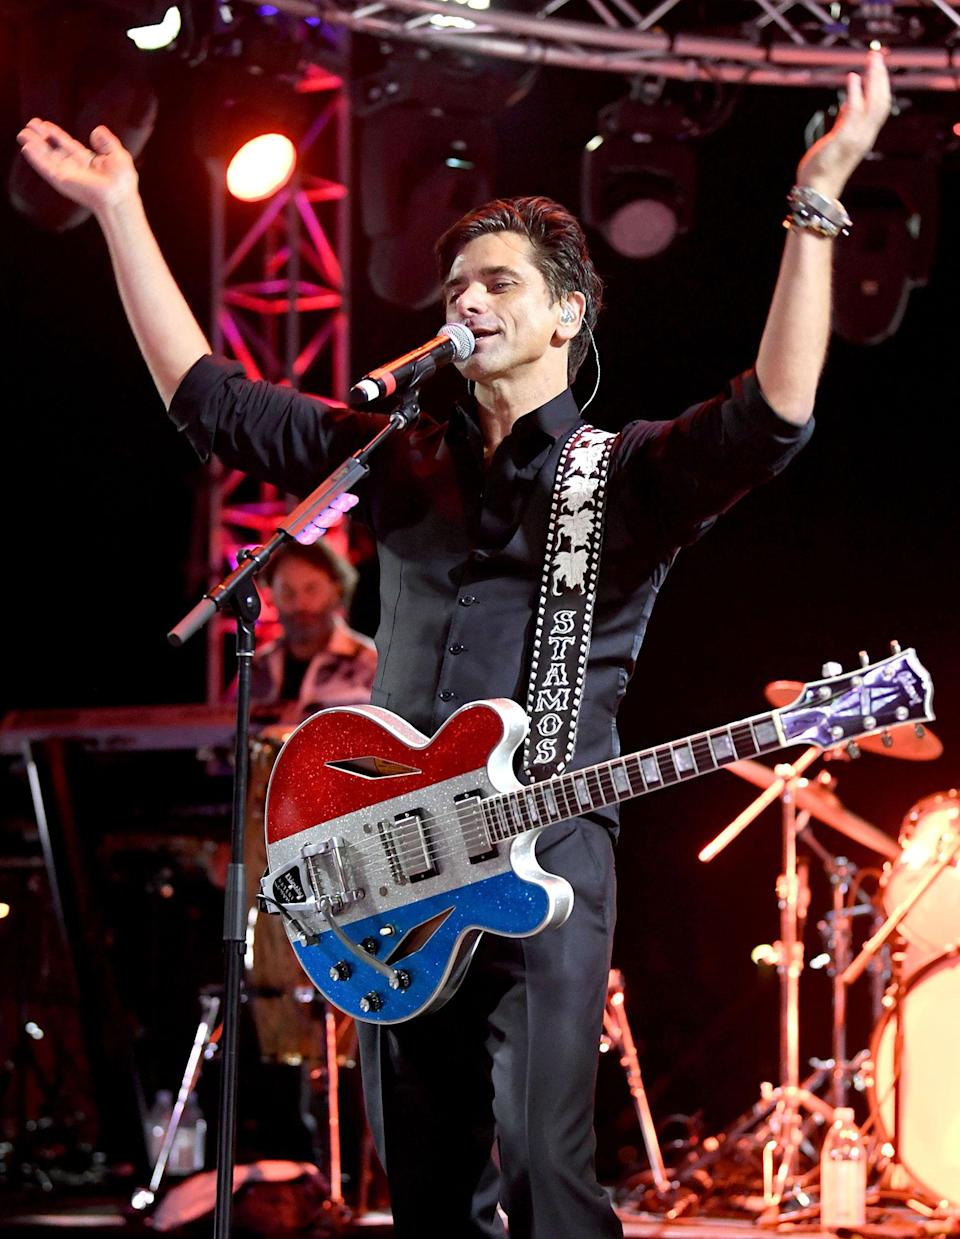 <p>John Stamos performed onstage during the Concerts In Your Car's The Beach Boys' Drive-in event at Ventura County Fairgrounds in California.</p>